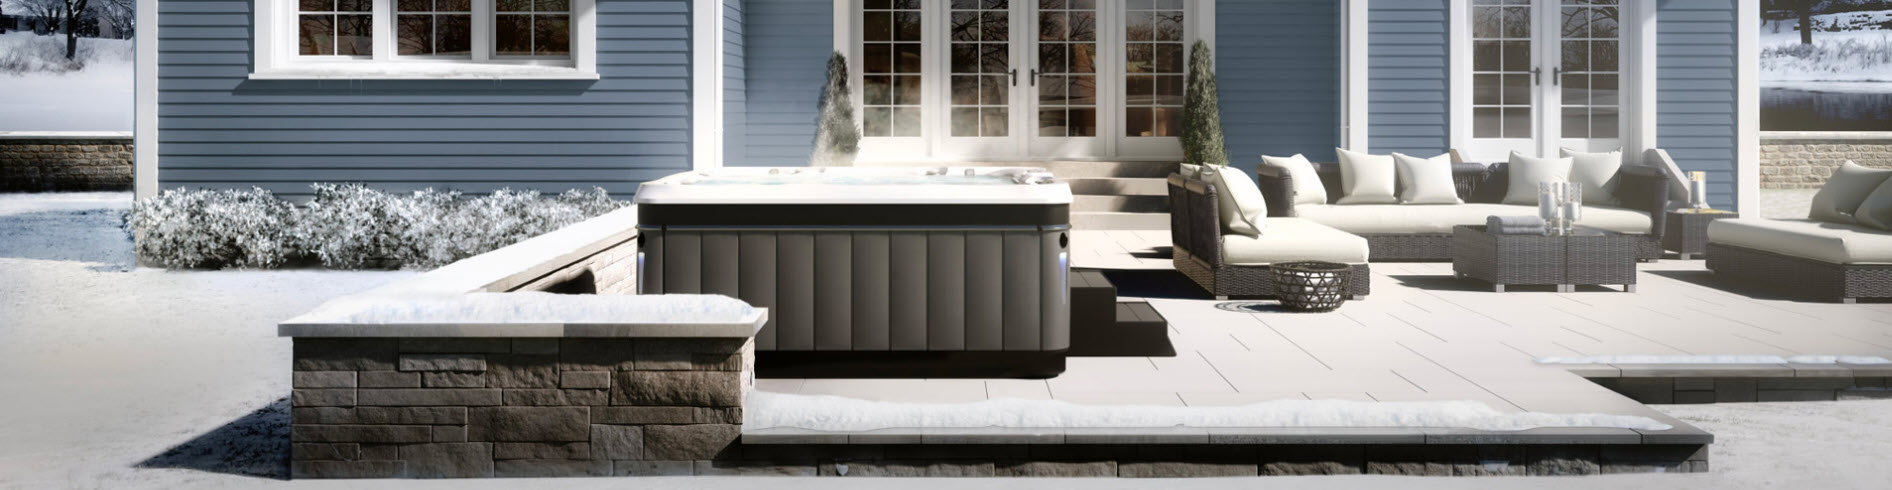 How a Backyard Spa Can Relieve Chronic Back Pain, Hot Tub Deals Sioux Falls